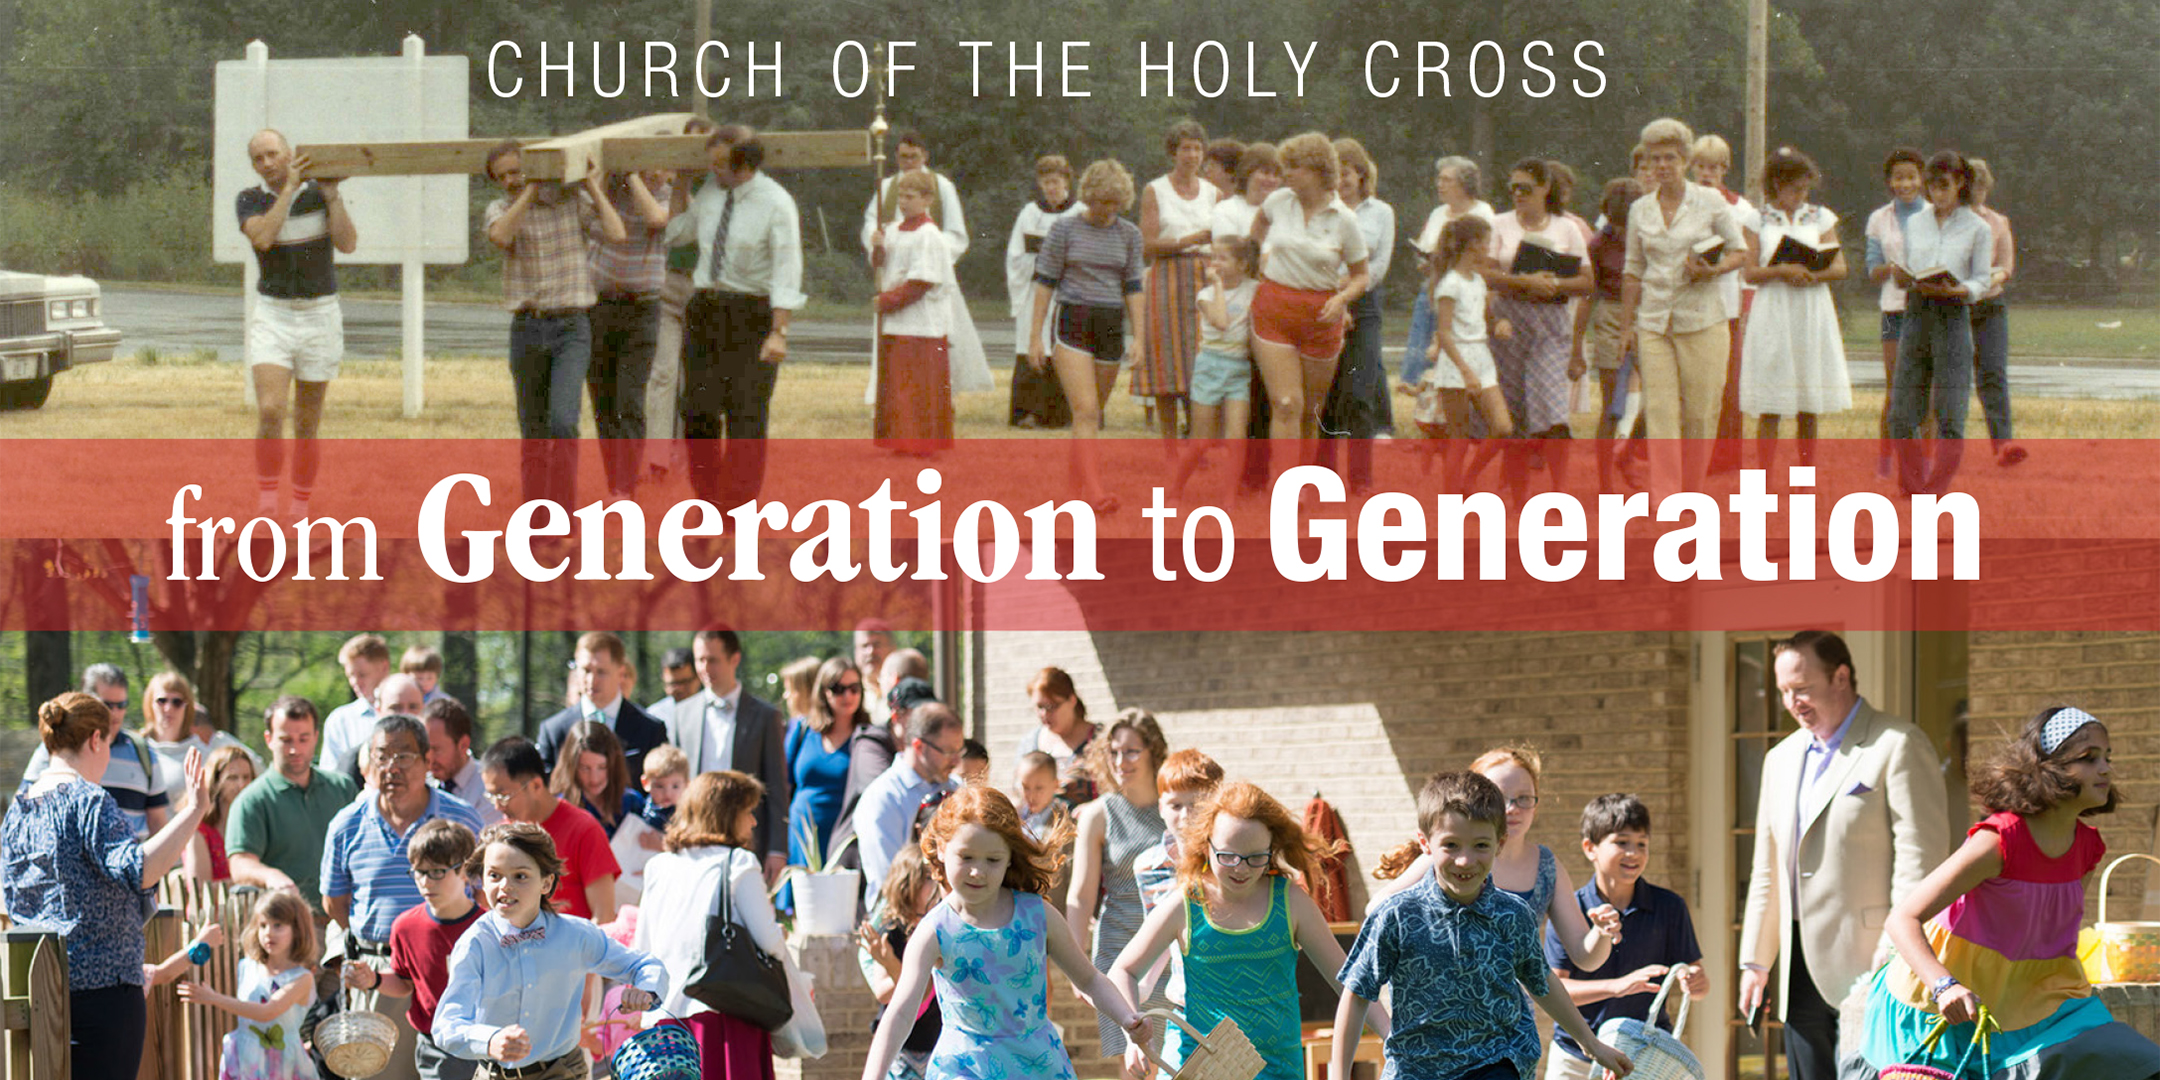 photos of founding members of Holy Cross and current members with the words from generation to generation in between